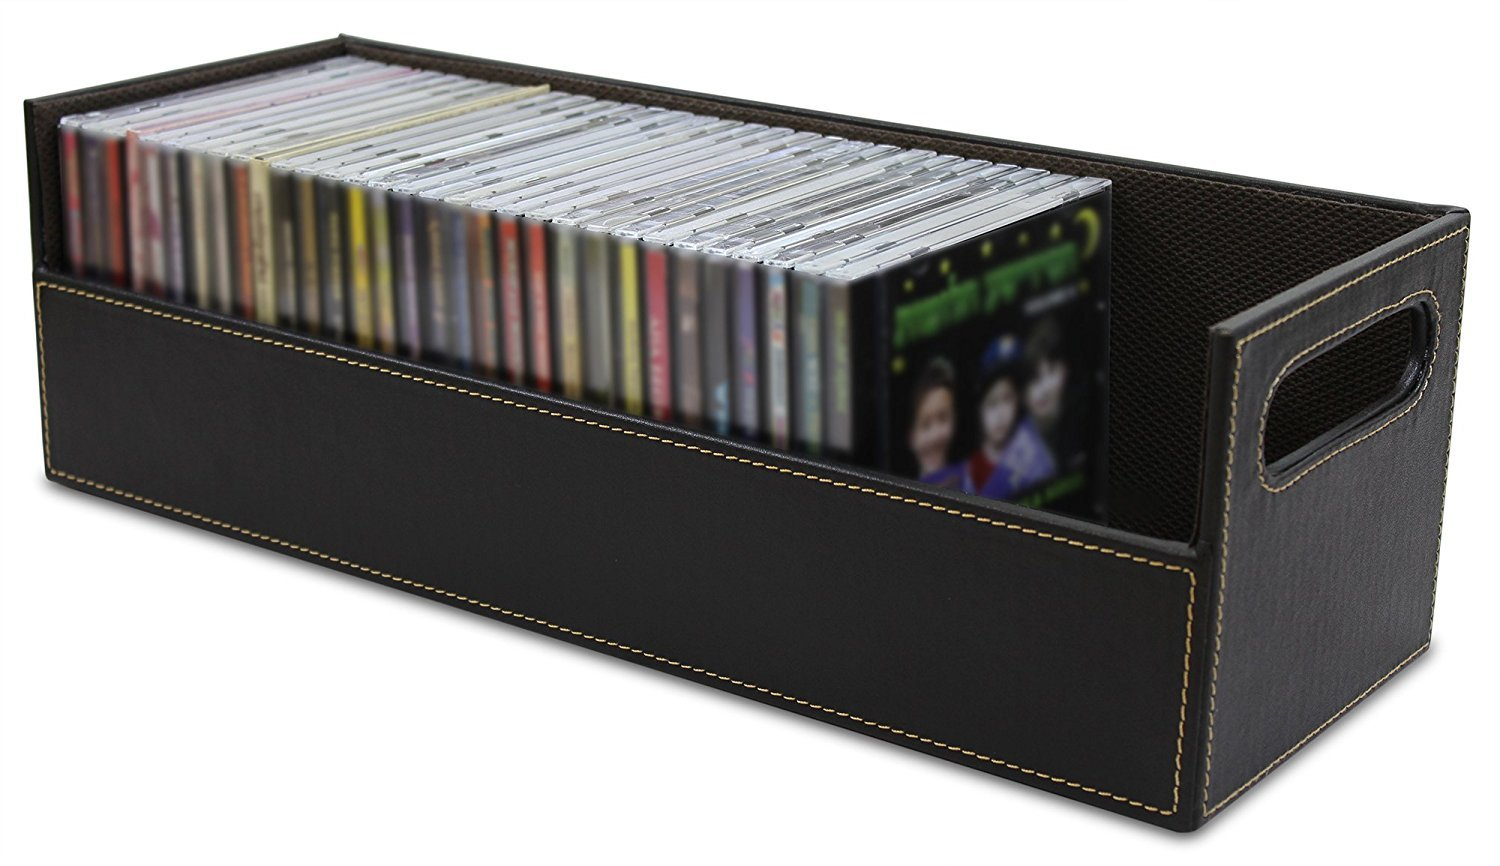 Stock Your Home Stacking CD Tray And Media Storage Box For CD Shelf Storage  And Organization, Holds 40 CDs   Chocolate